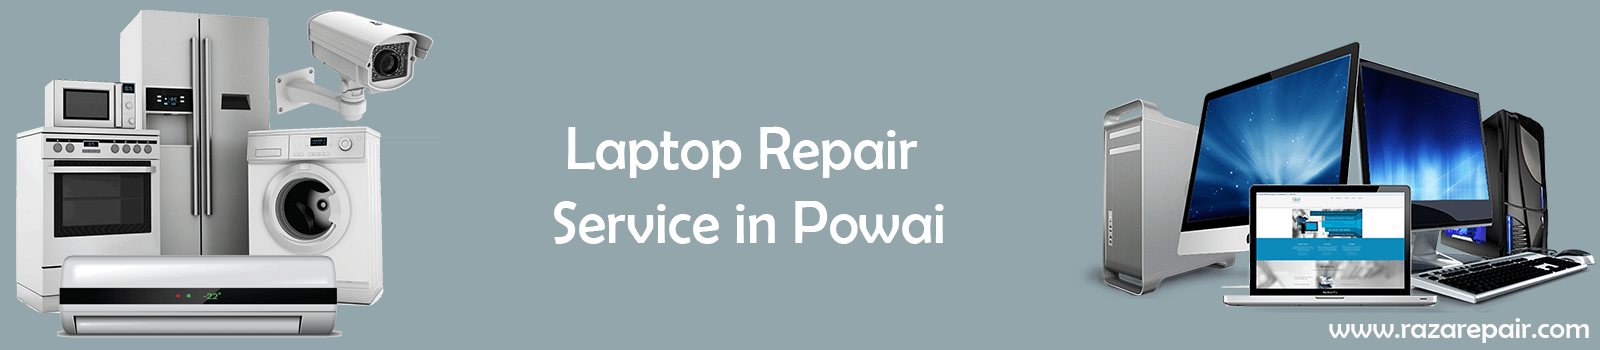 Laptop Repair Service in Powai | Call Now 8655112626